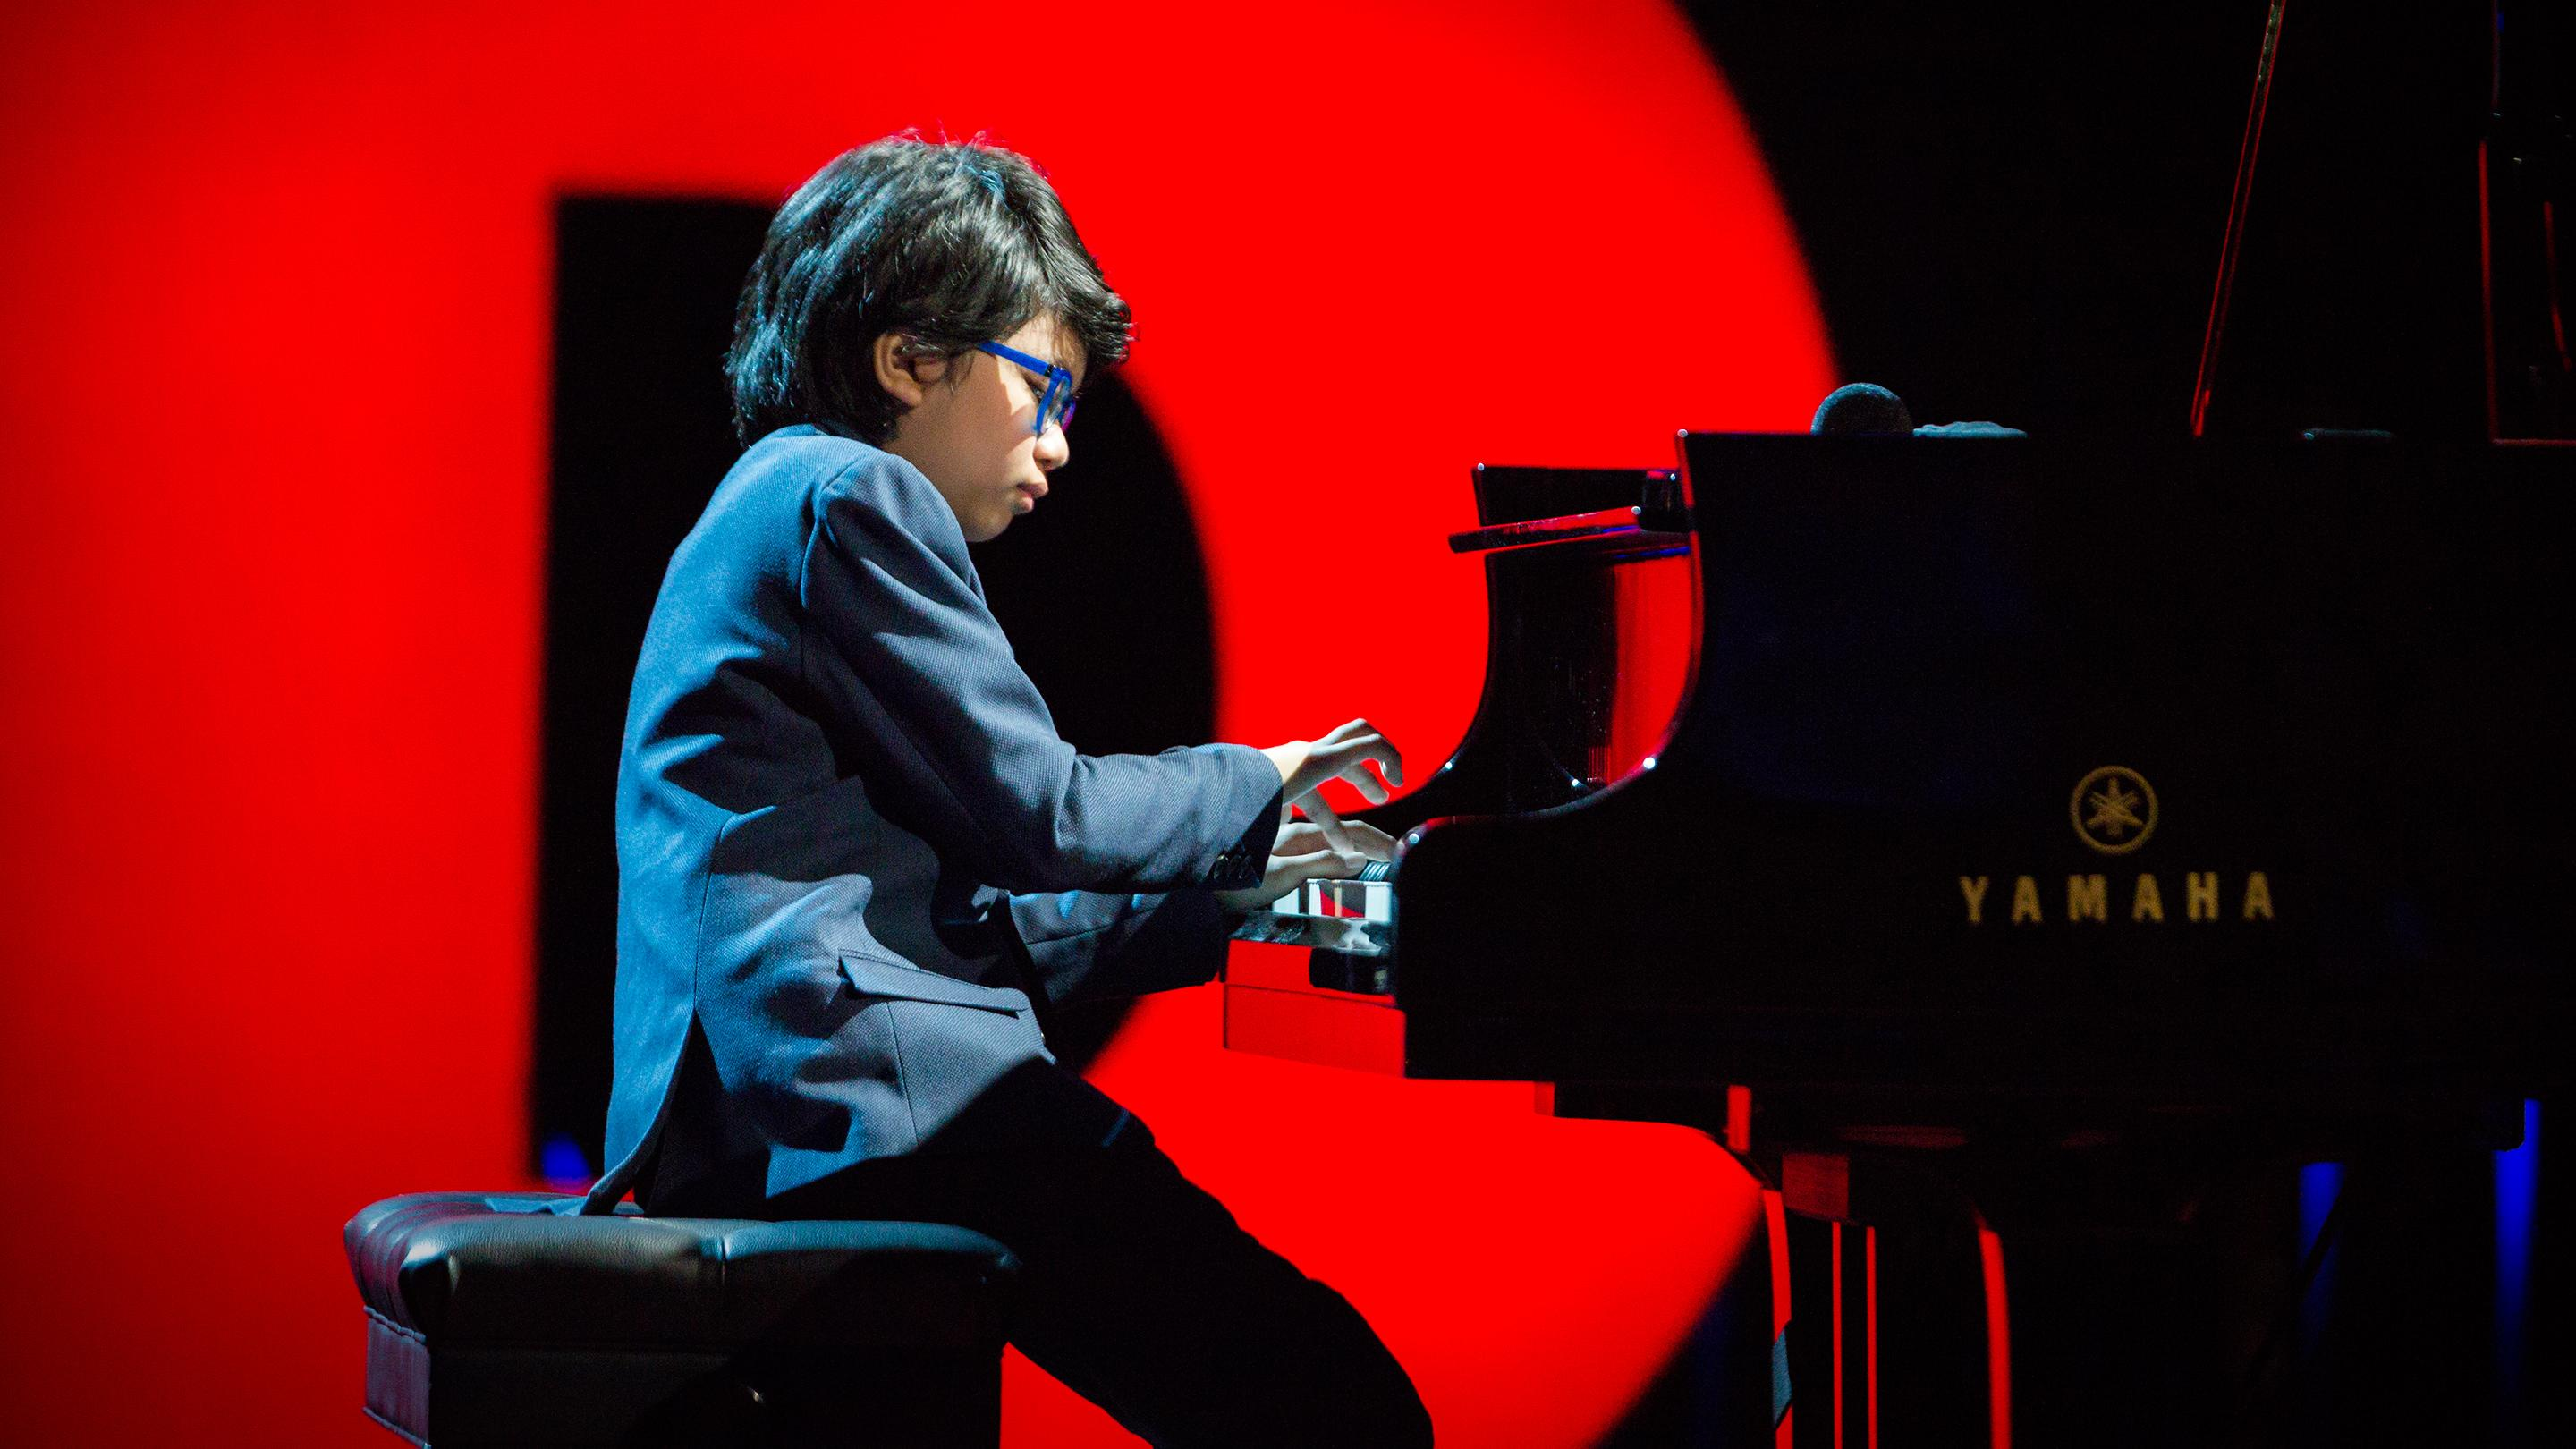 Joey Alexander An  Year Old Prodigy Performs Old School Jazz Ted Talk